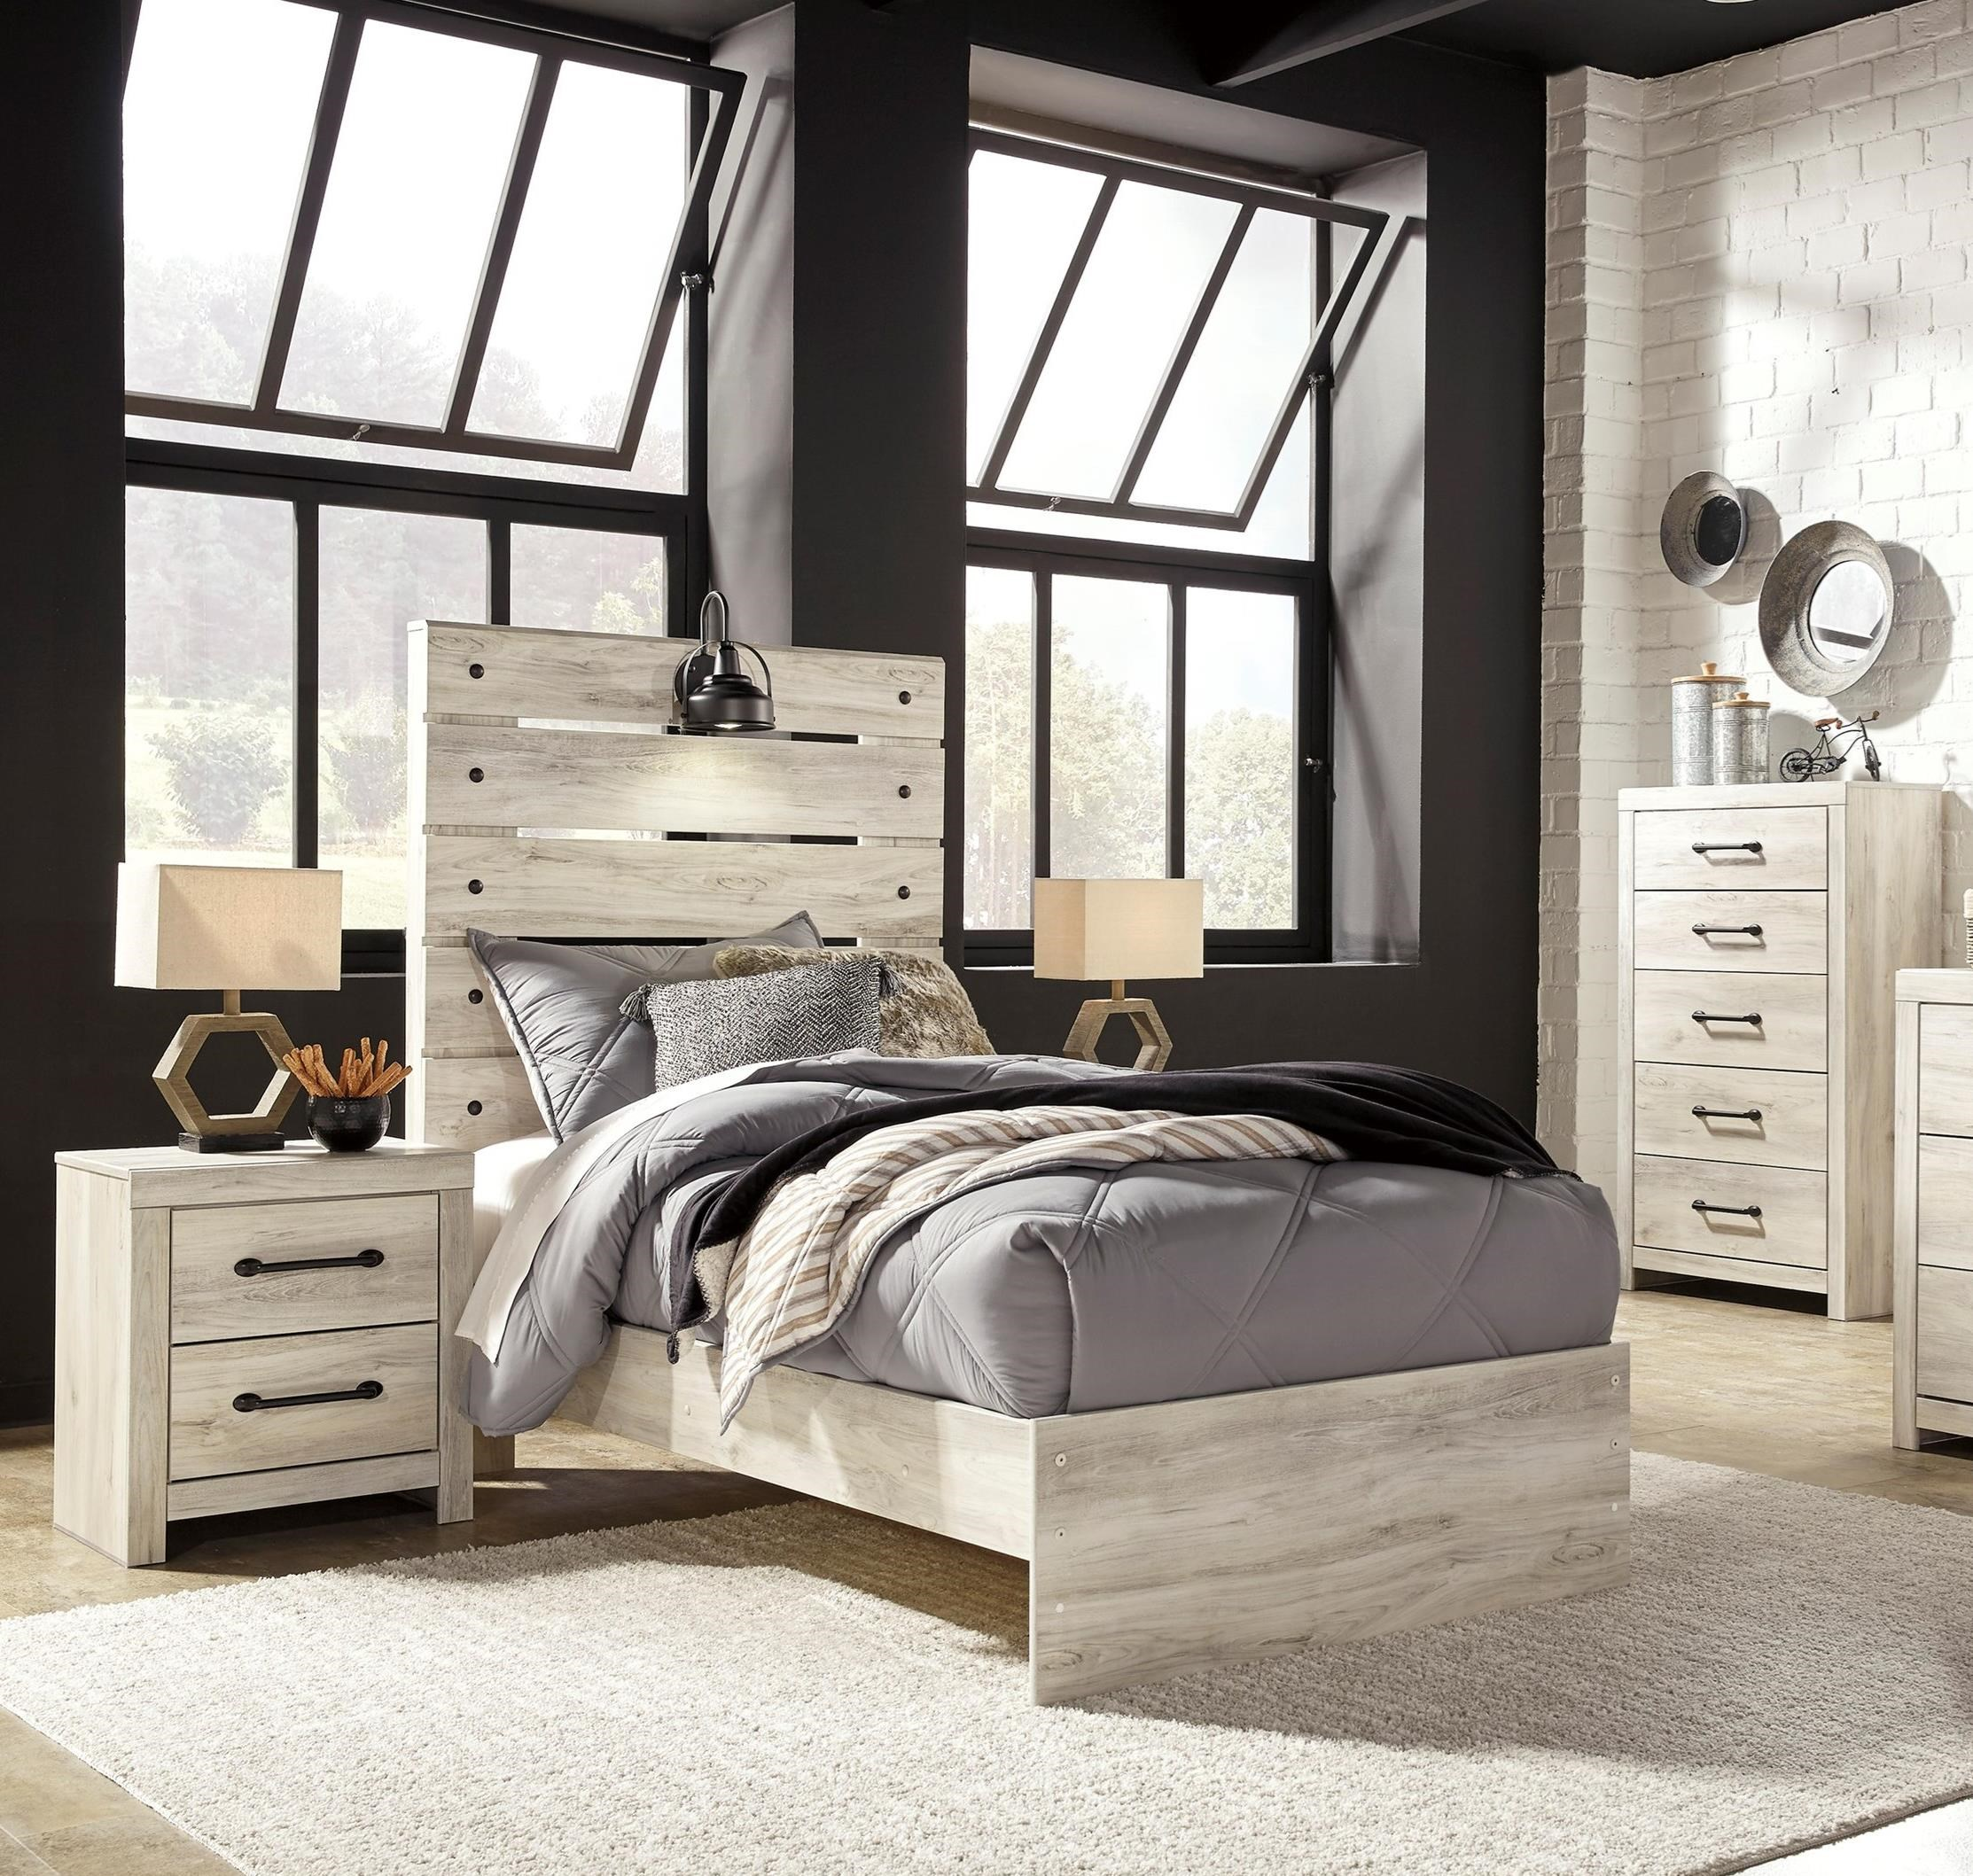 Cambeck Twin Bedroom Group by Signature Design by Ashley at Zak's Warehouse Clearance Center